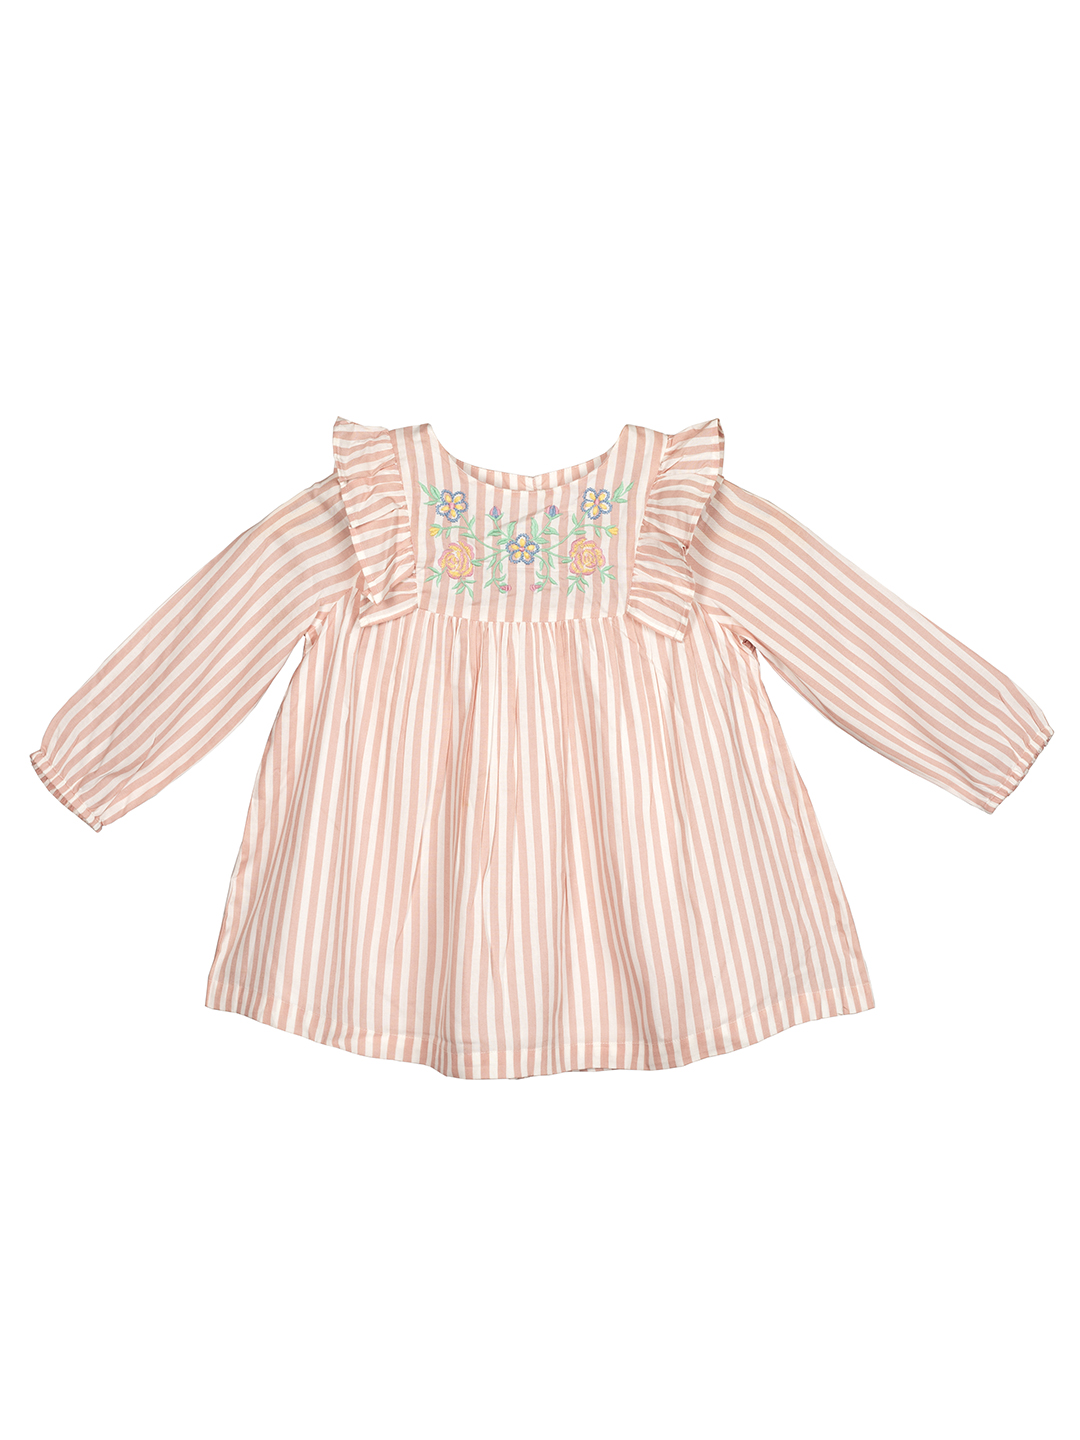 Budding Bees   Budding Bees Girls Beautiful Embroidered Top-Orange